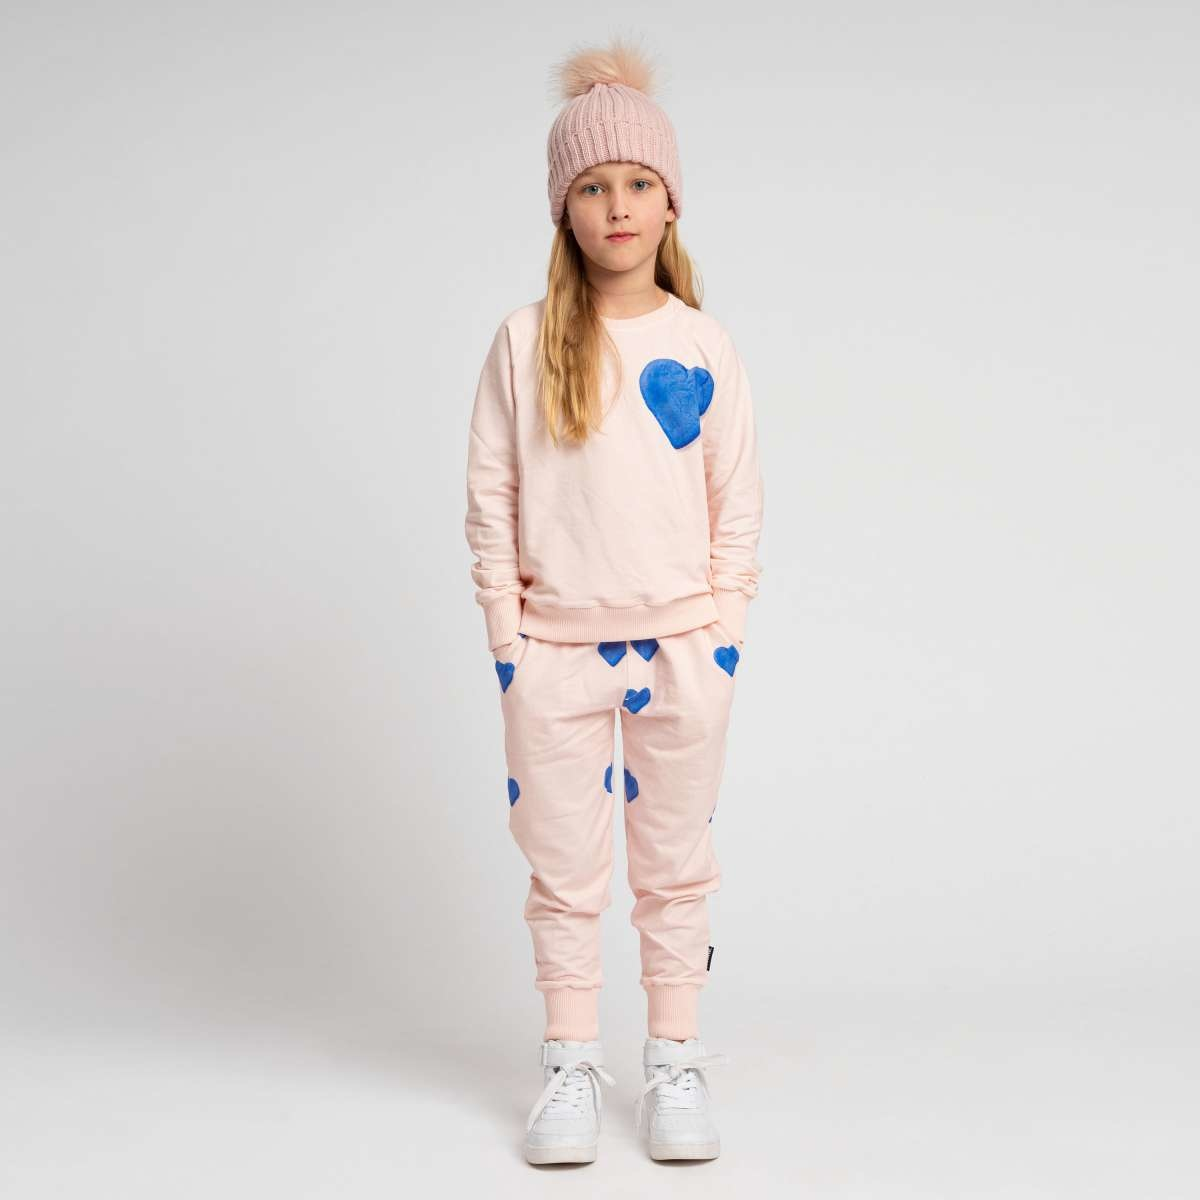 Sweatsuit - Heart -2 pc. - Sz 9/10-1